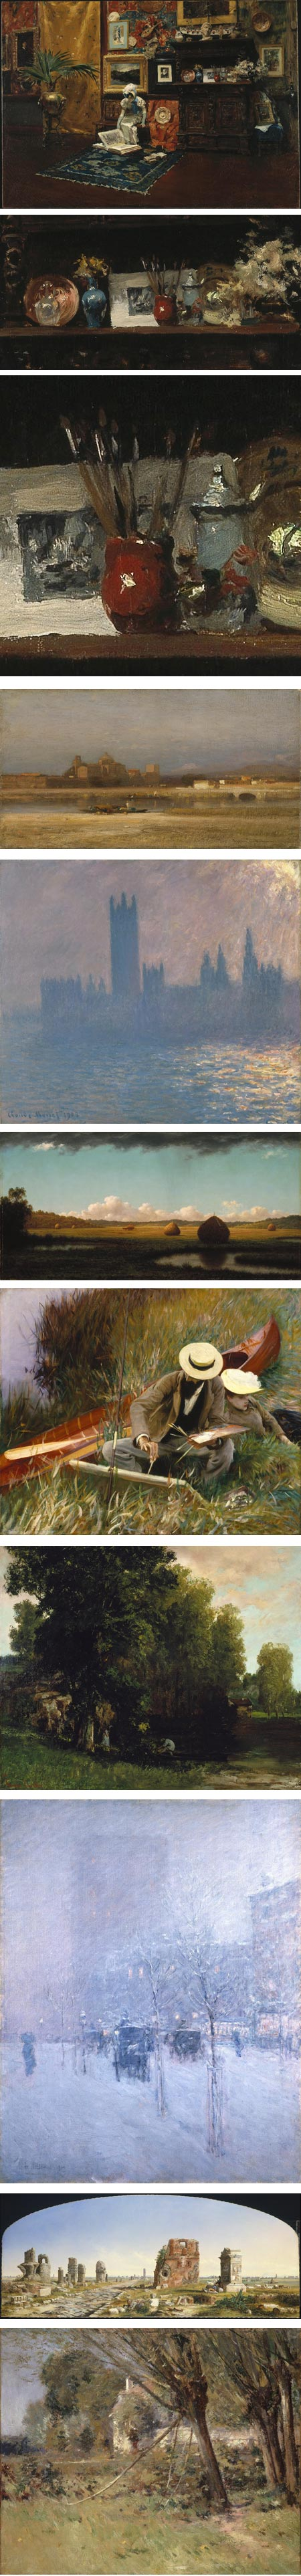 Brooklyn Museum on Google Art Project: William Merritt Chase, Samuel Coleman, Claude Monet, Martin Johnson Heade, John Singer Sargent, Gustav Courbet, Childe Hassam, John Linton Chapman, Theodore Robinson